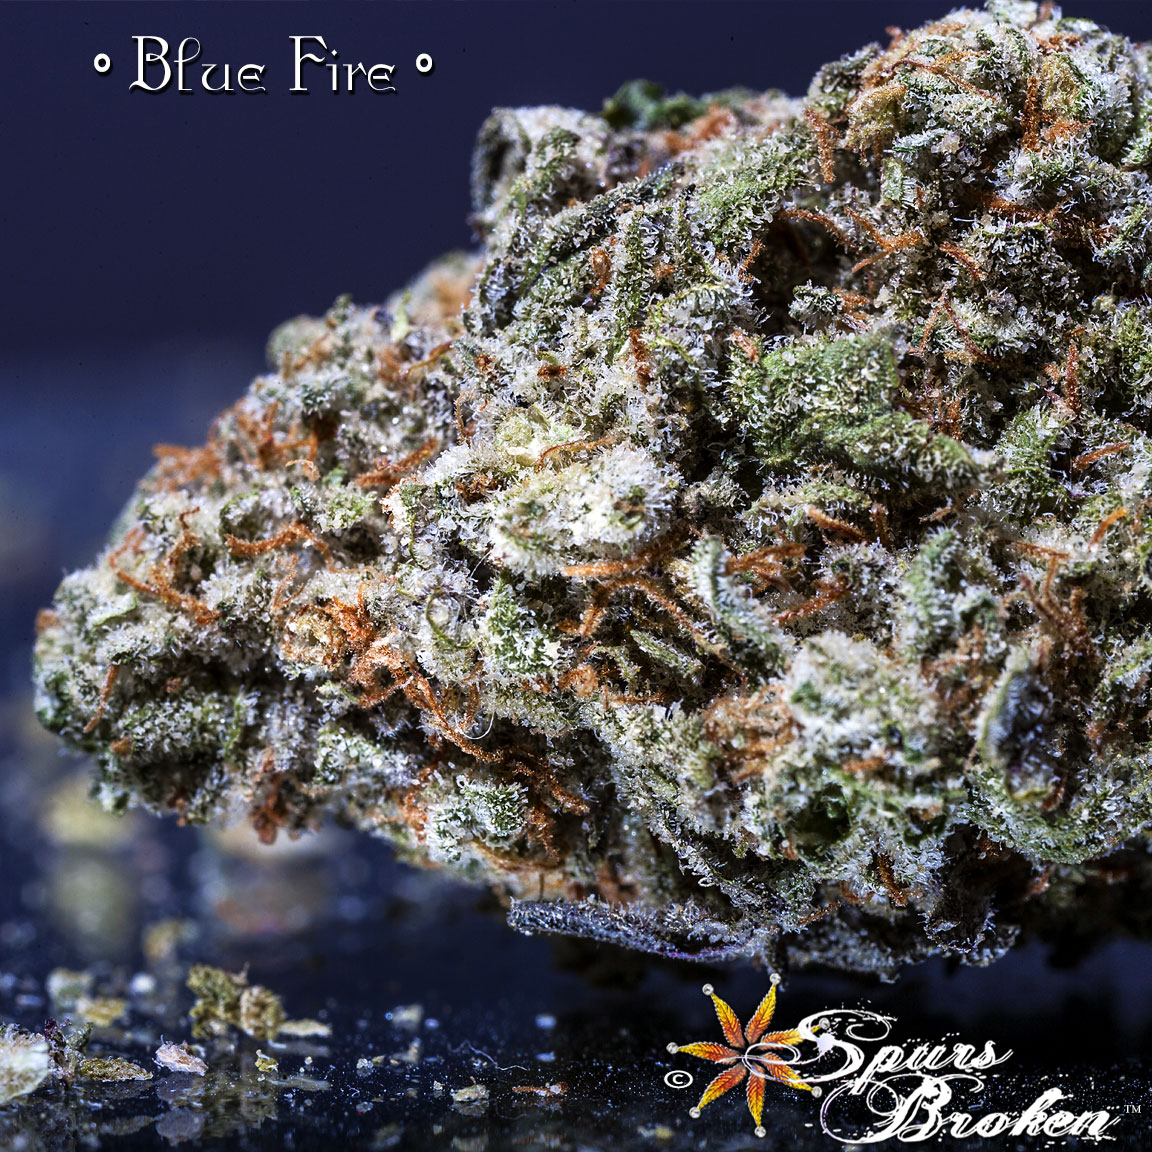 Blue Fire - Cannabis Macro Photography by Spurs Broken (Robert R. Sanders)